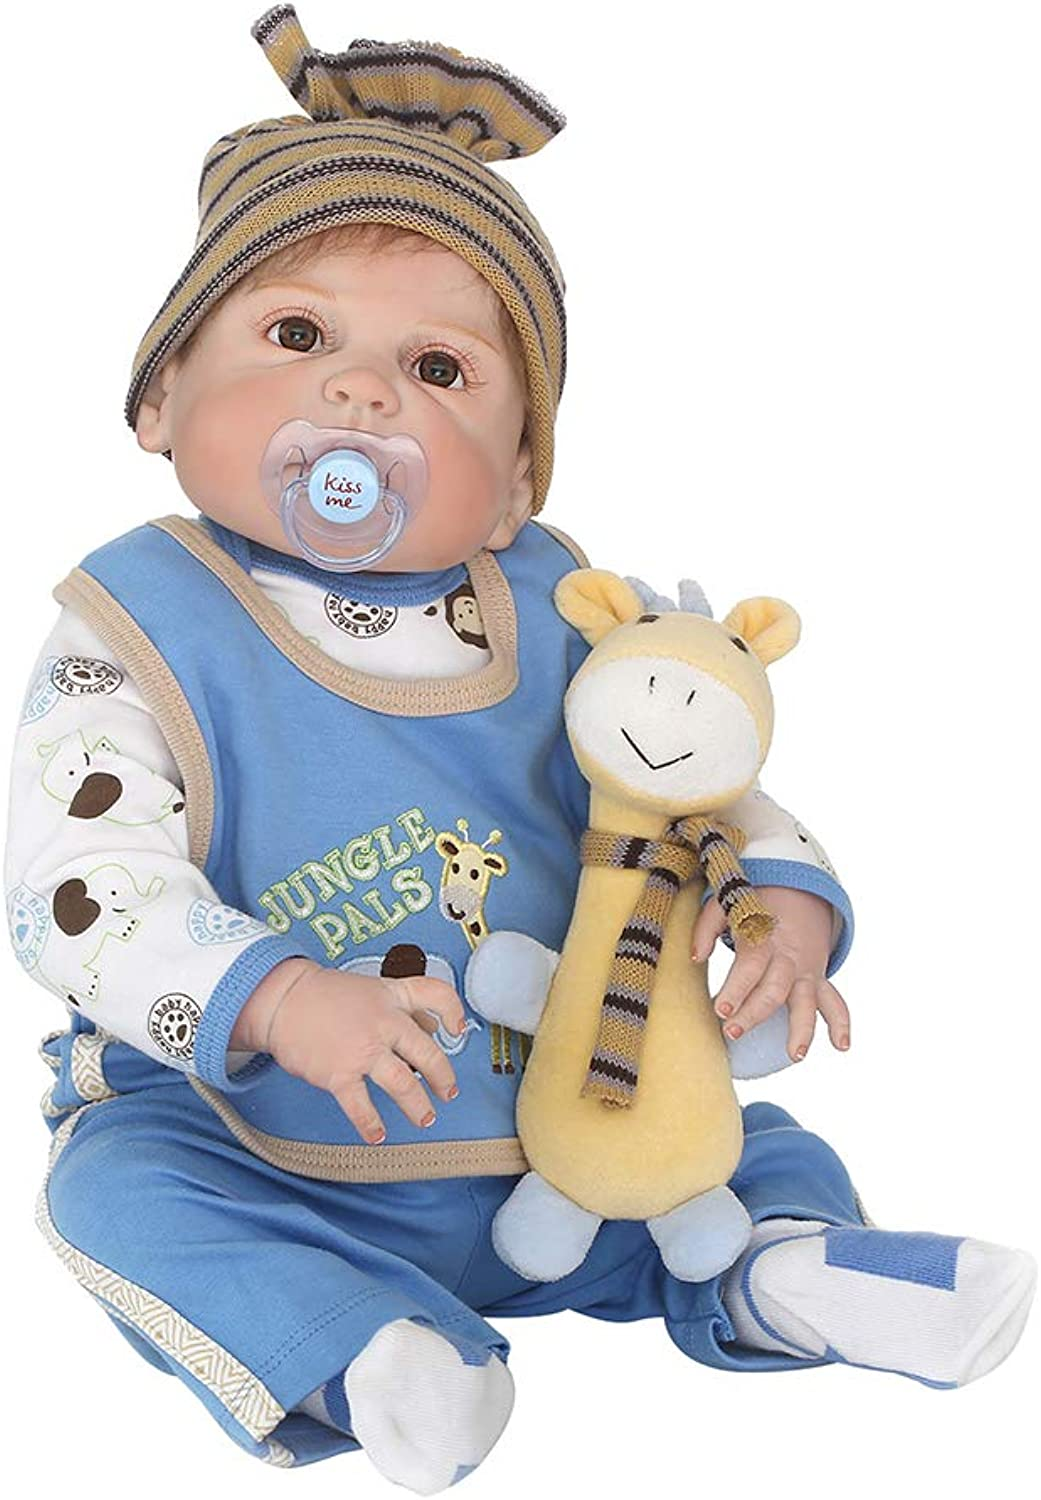 Danigrefinb 22.05 Inch Soft Body Baby Doll, 56cm Vinyl Silicone Reborn Baby Doll Lifelike Kids Accompany Toy with Pacifier  bluee